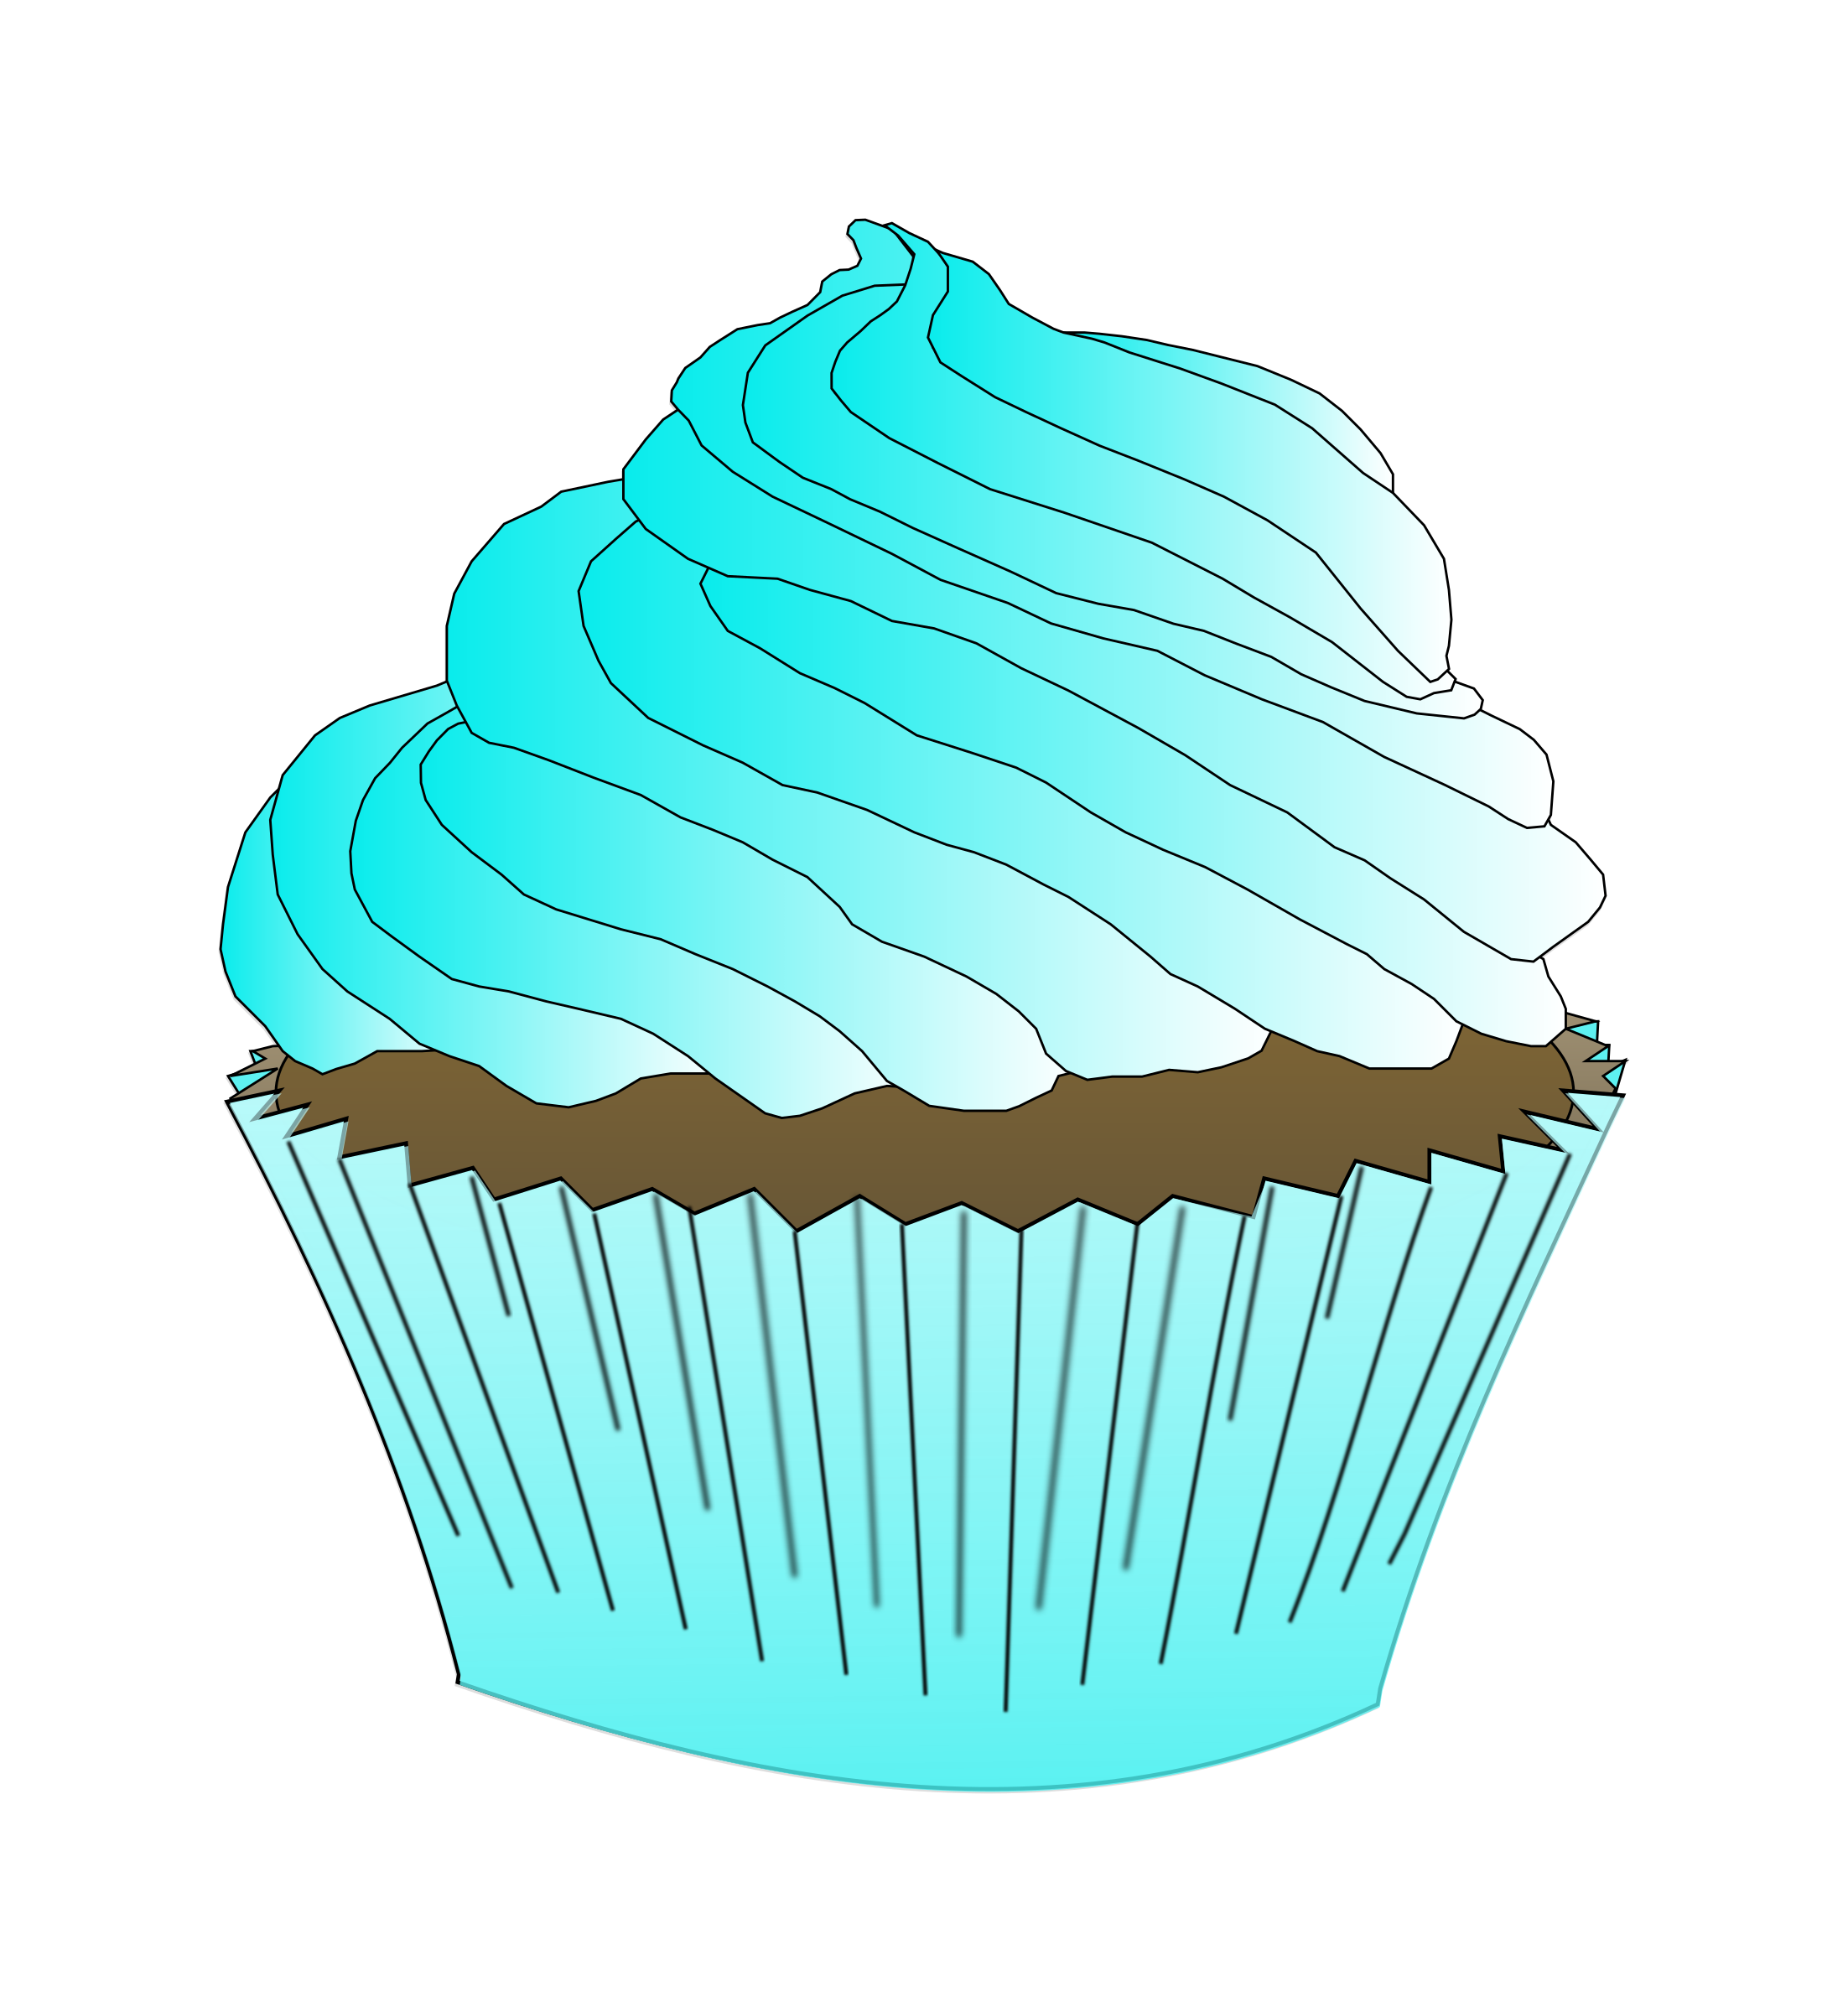 clip art download Chocolate teal cupcake big. Muffin clipart turquoise.